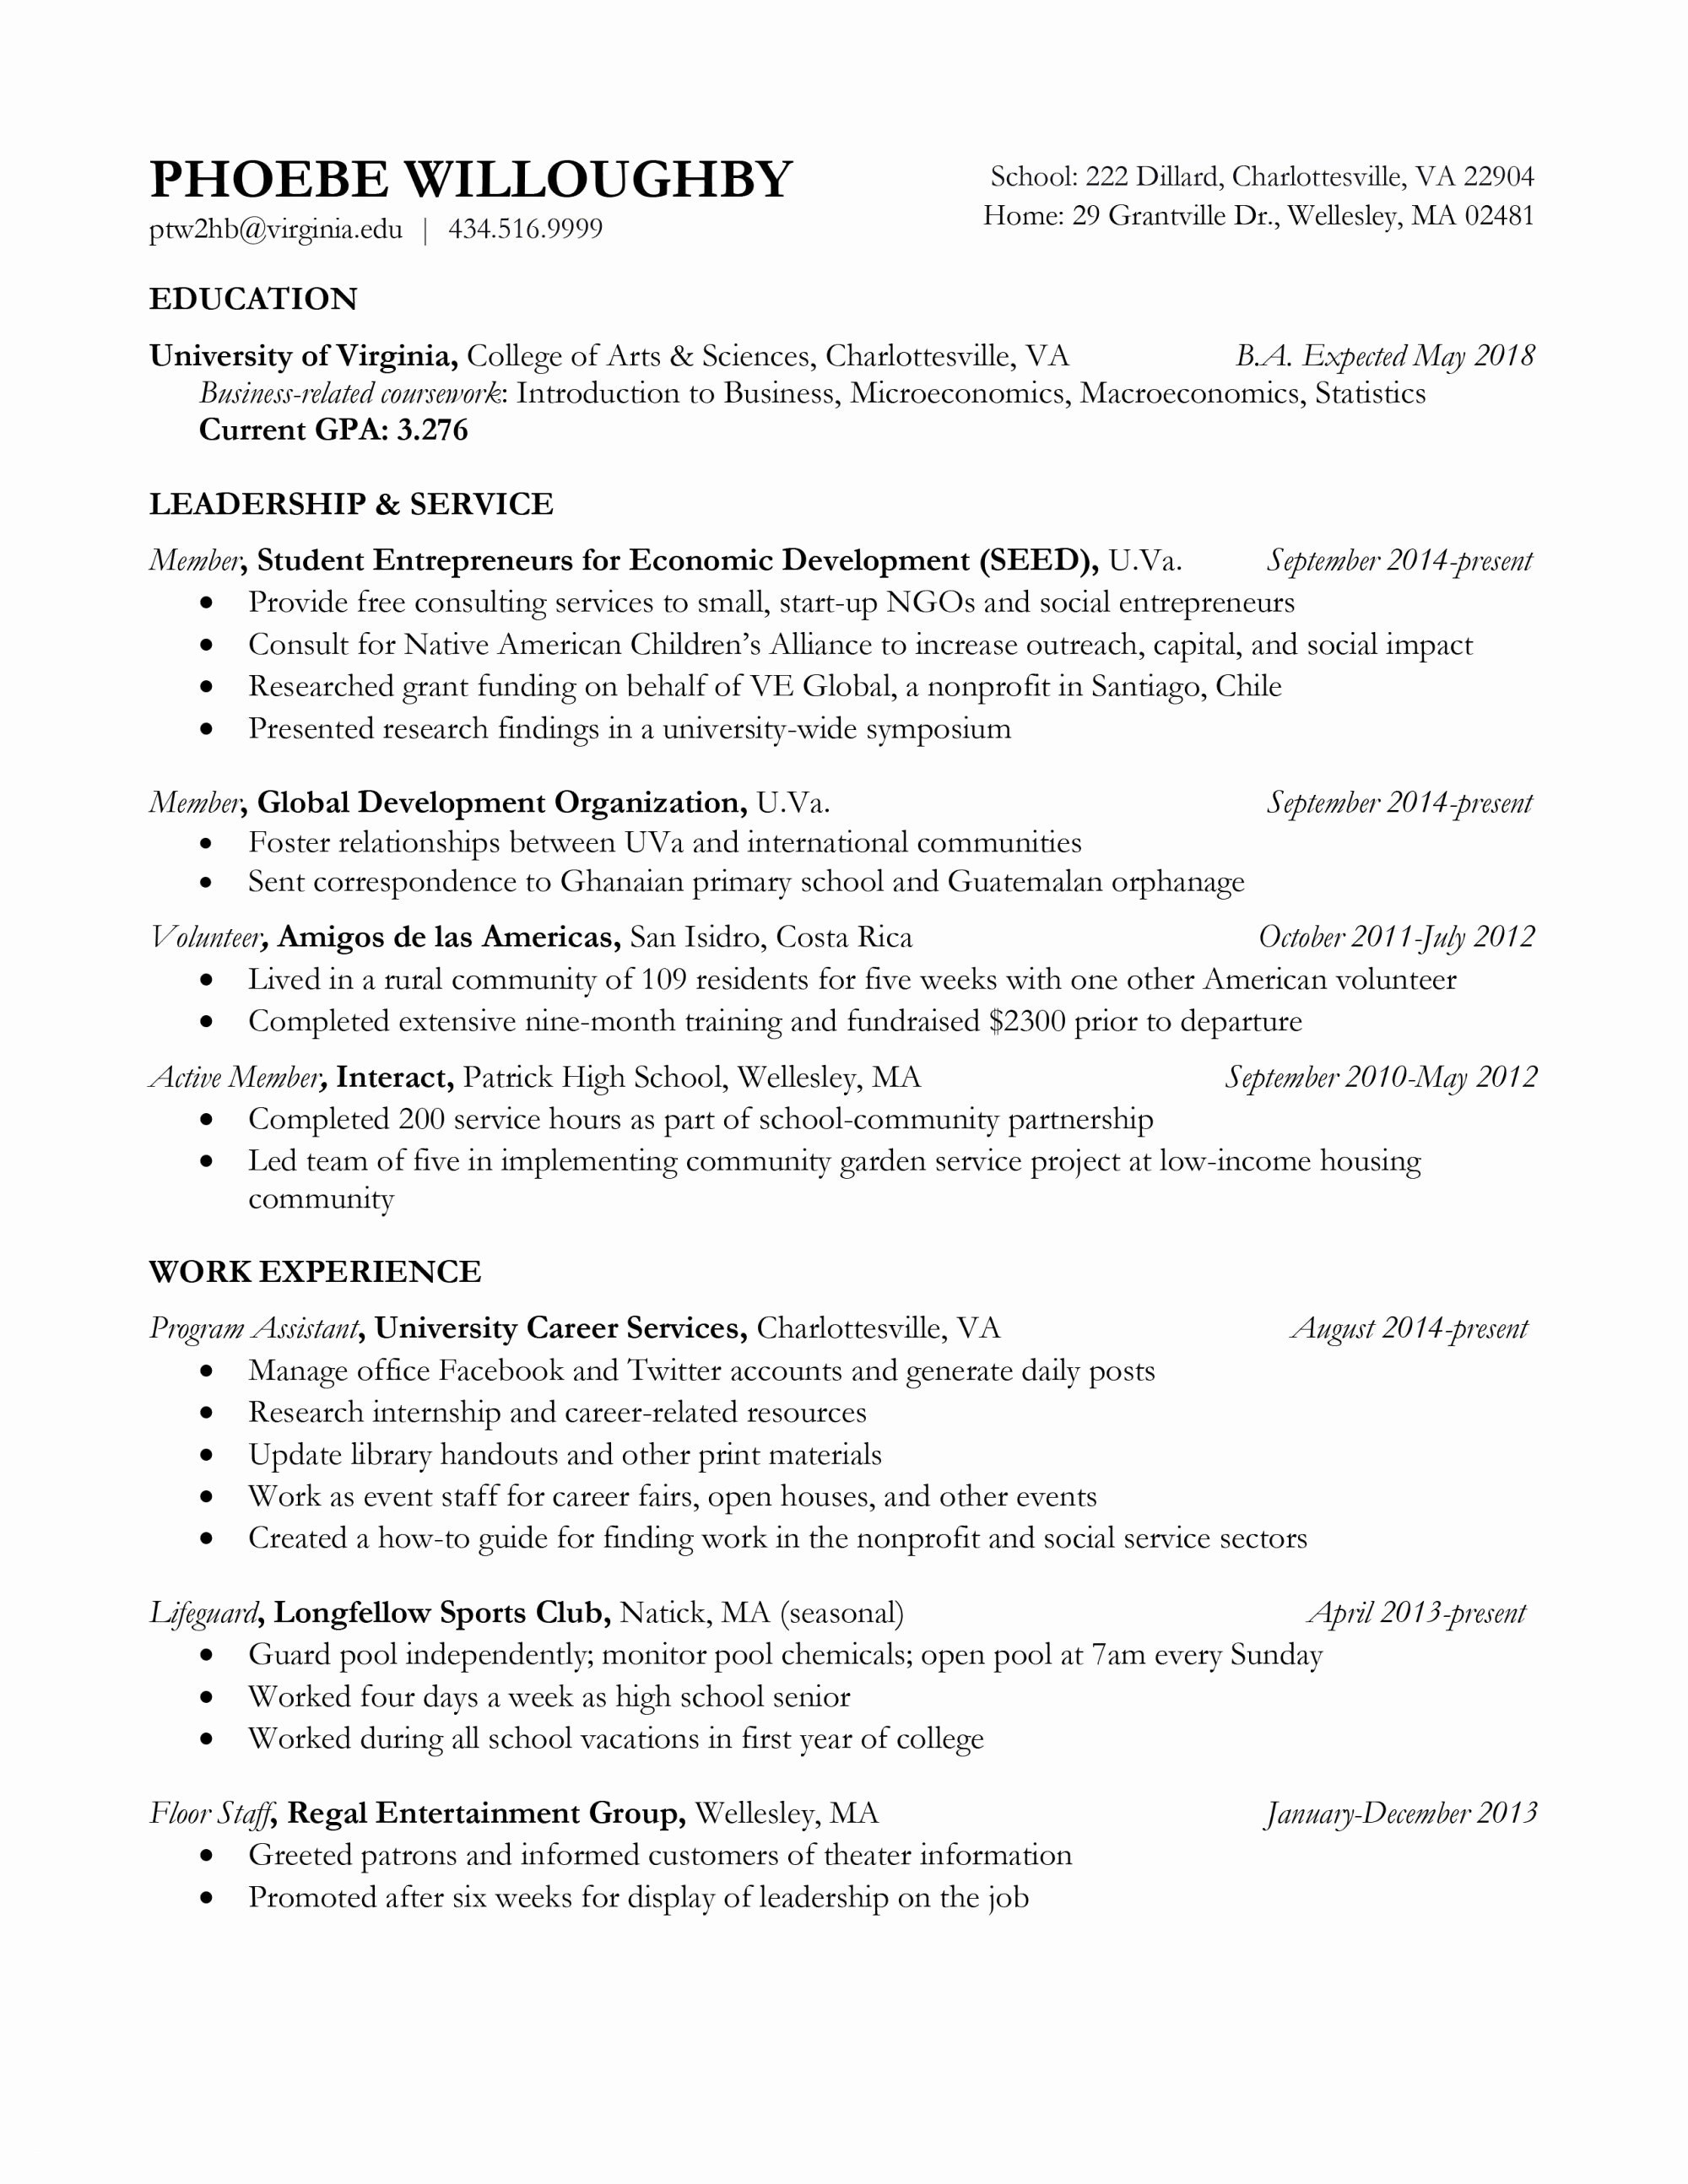 Cook Resume Template - Retail Resume Template Free Inspirationa Chef Resume Samples Awesome